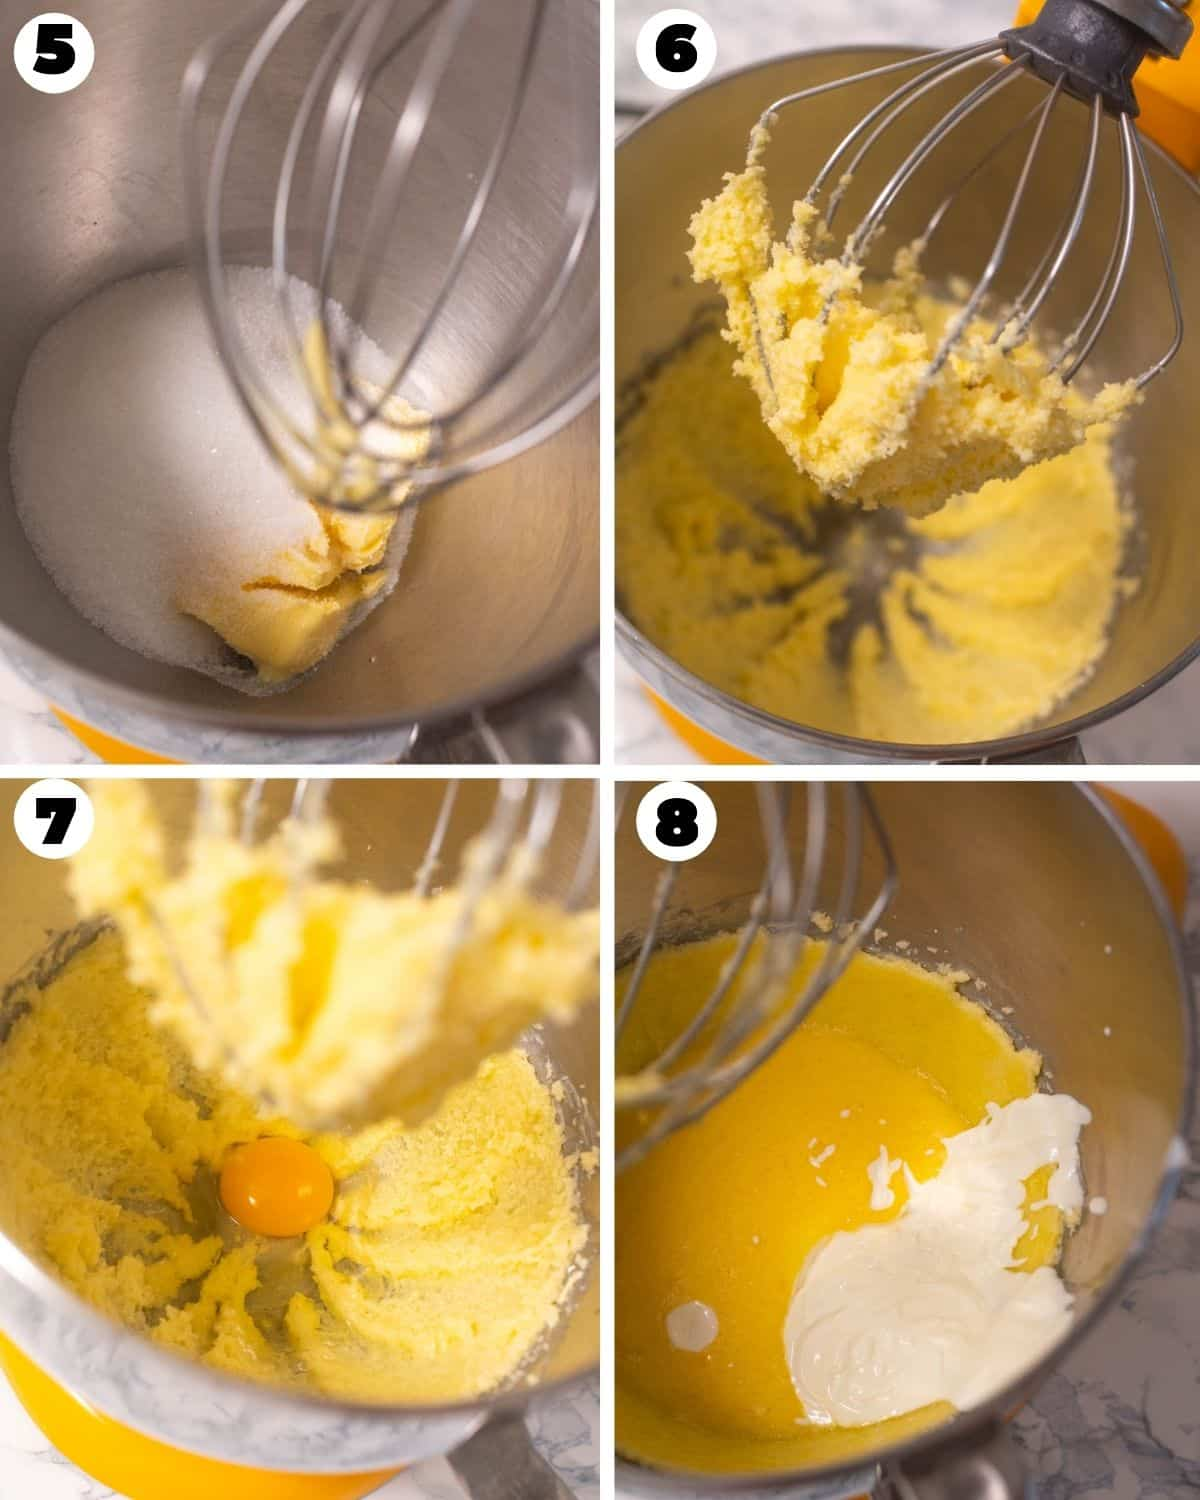 Collage of steps for creaming sugar and butter, adding eggs and sour cream for the batter